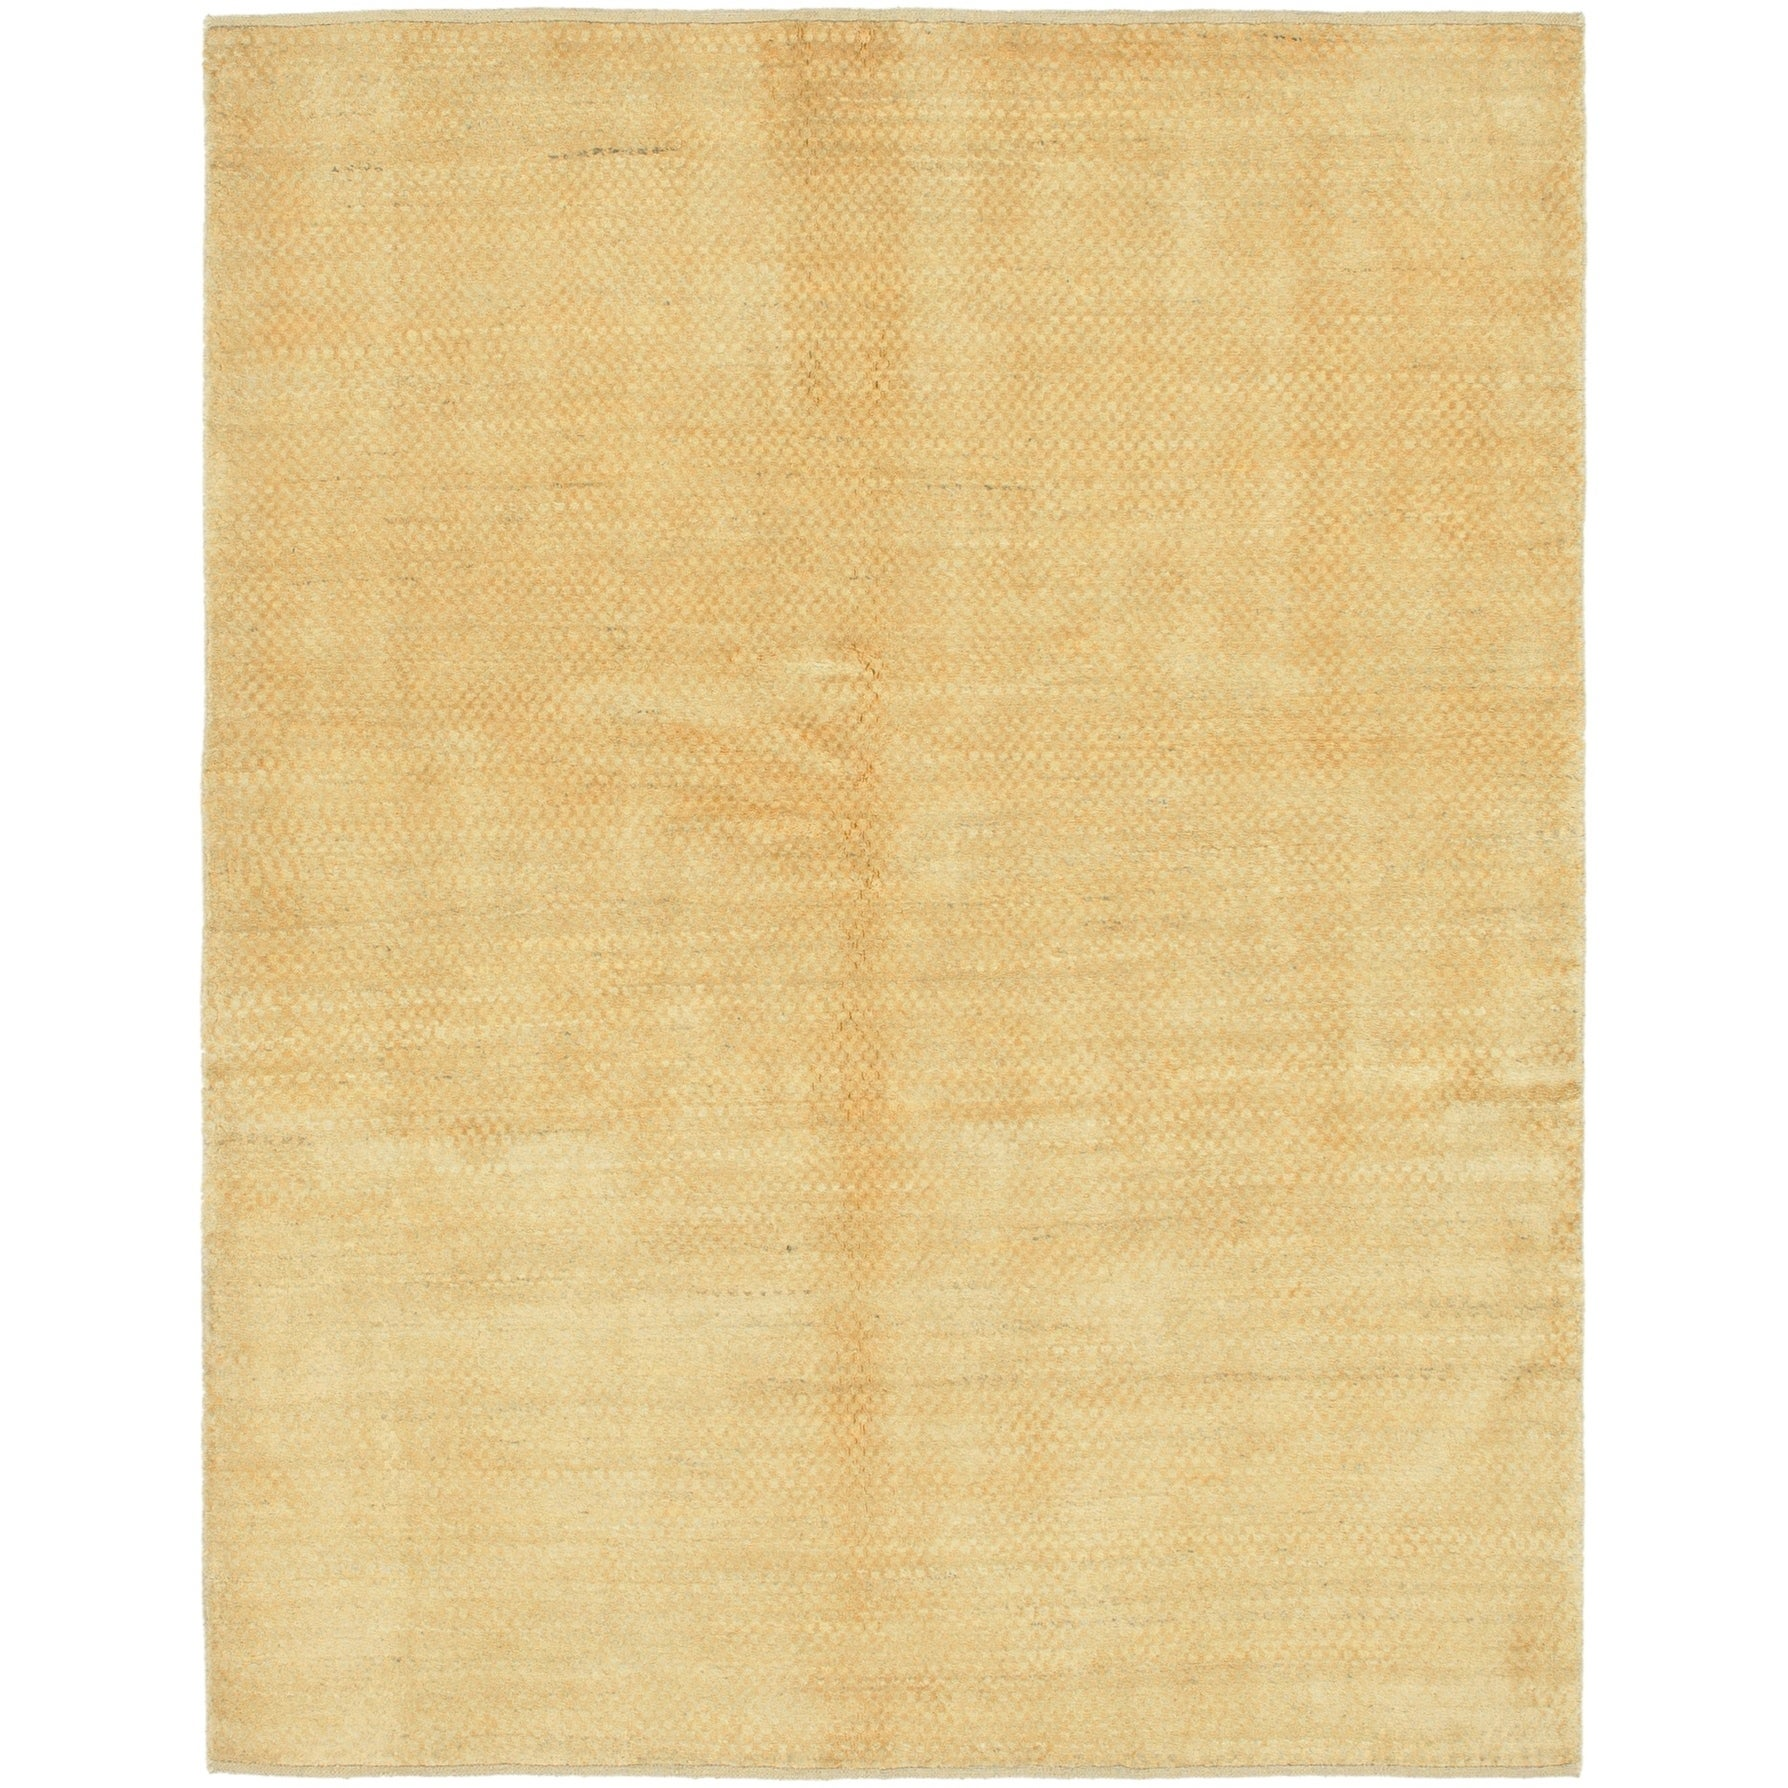 Hand Knotted Kashkuli Gabbeh Wool Area Rug - 5 2 x 6 8 (Gold - 5 2 x 6 8)